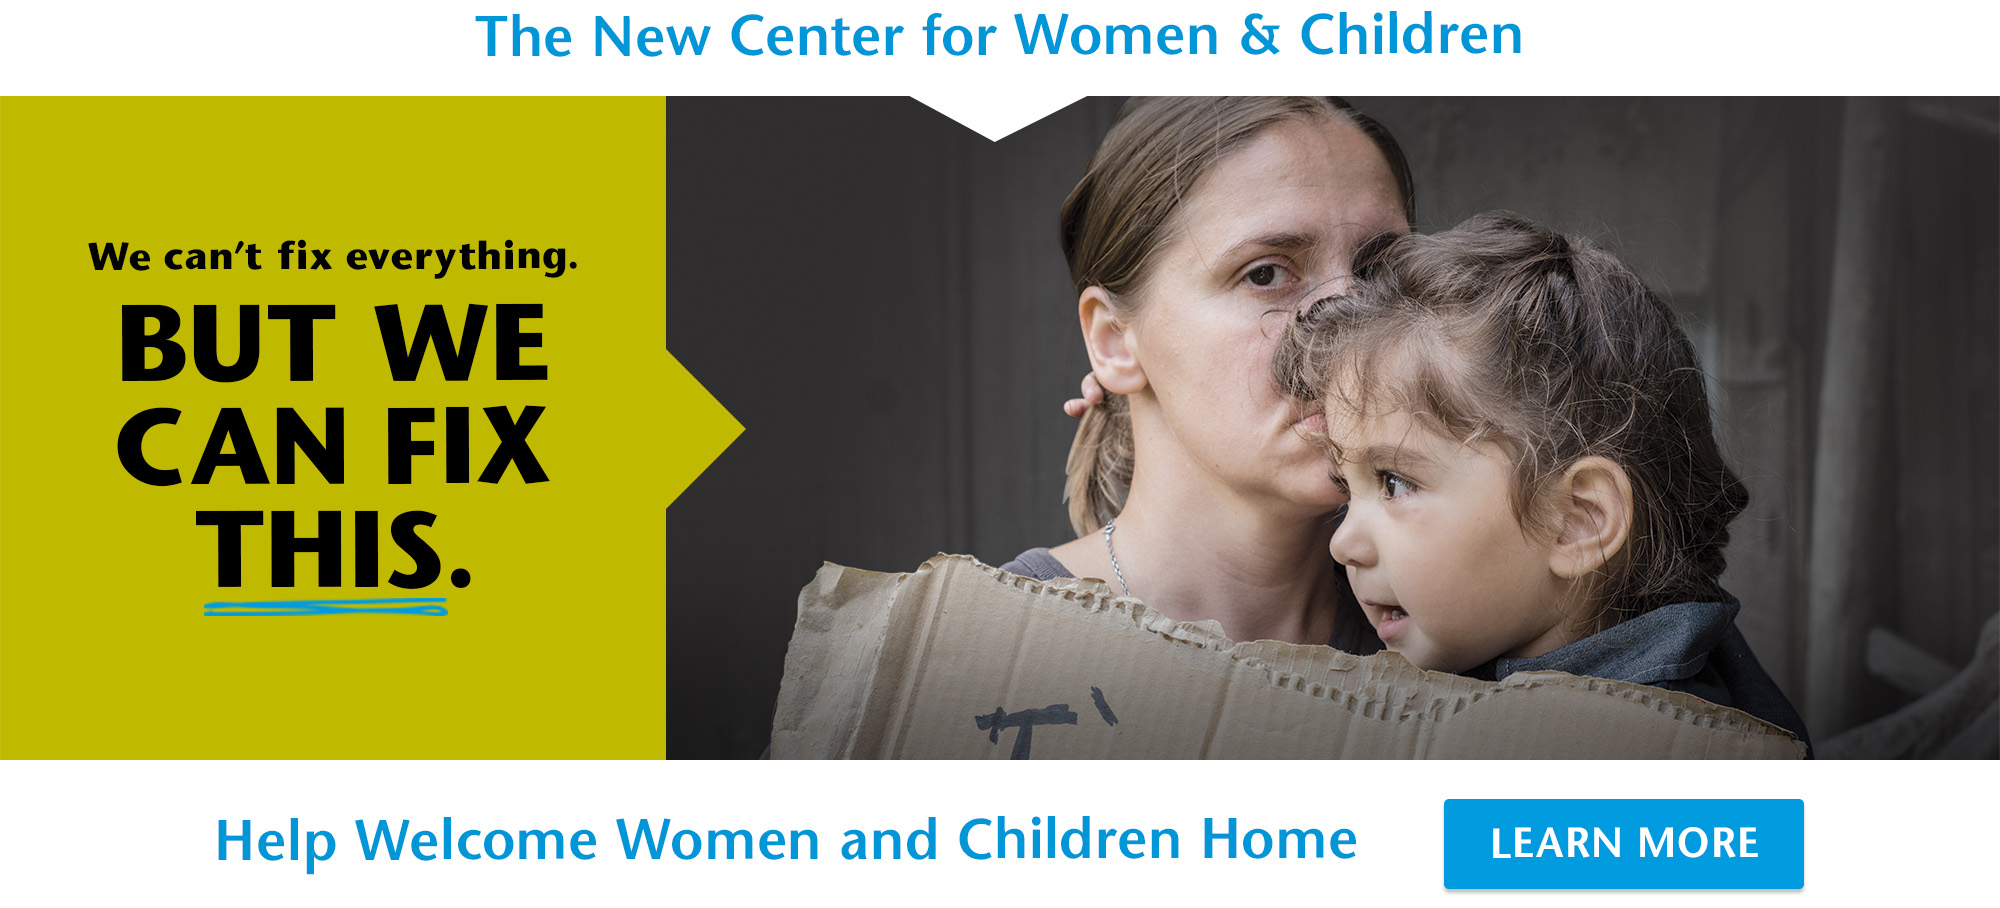 The New Centerfor Women and Children